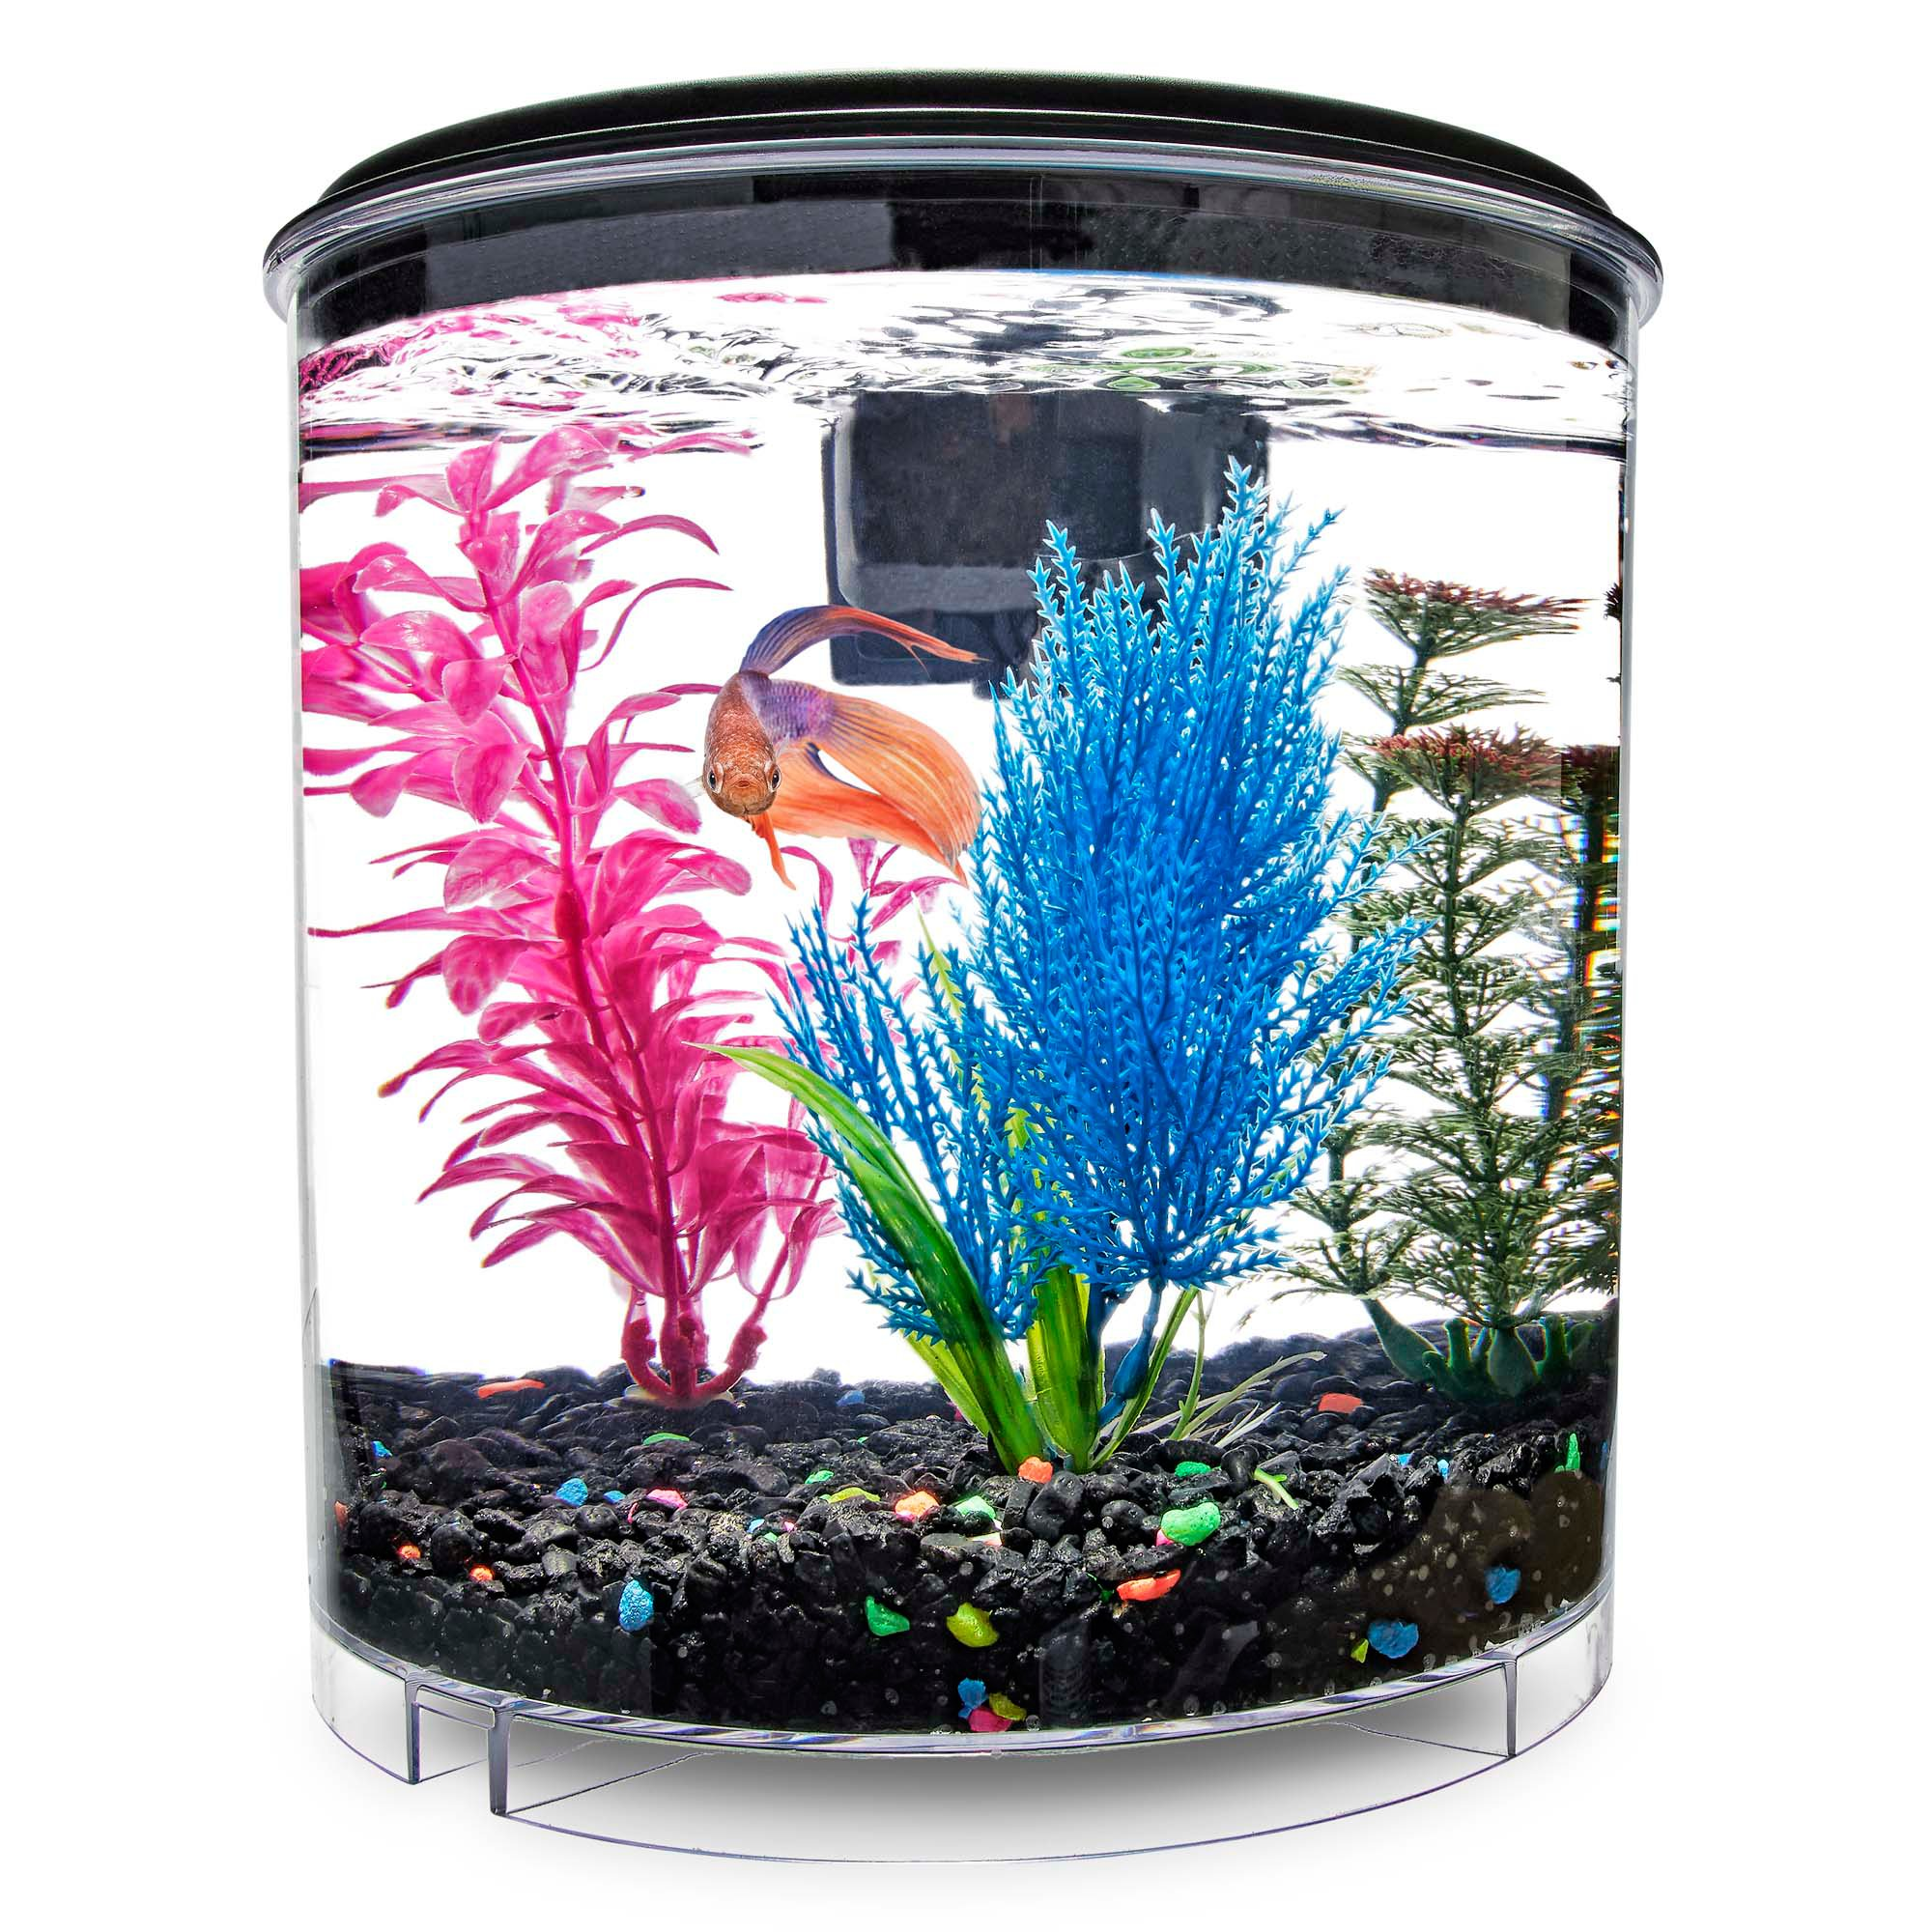 Imagitarium 2 gallon cumberland petco for 2 gallon betta fish tank